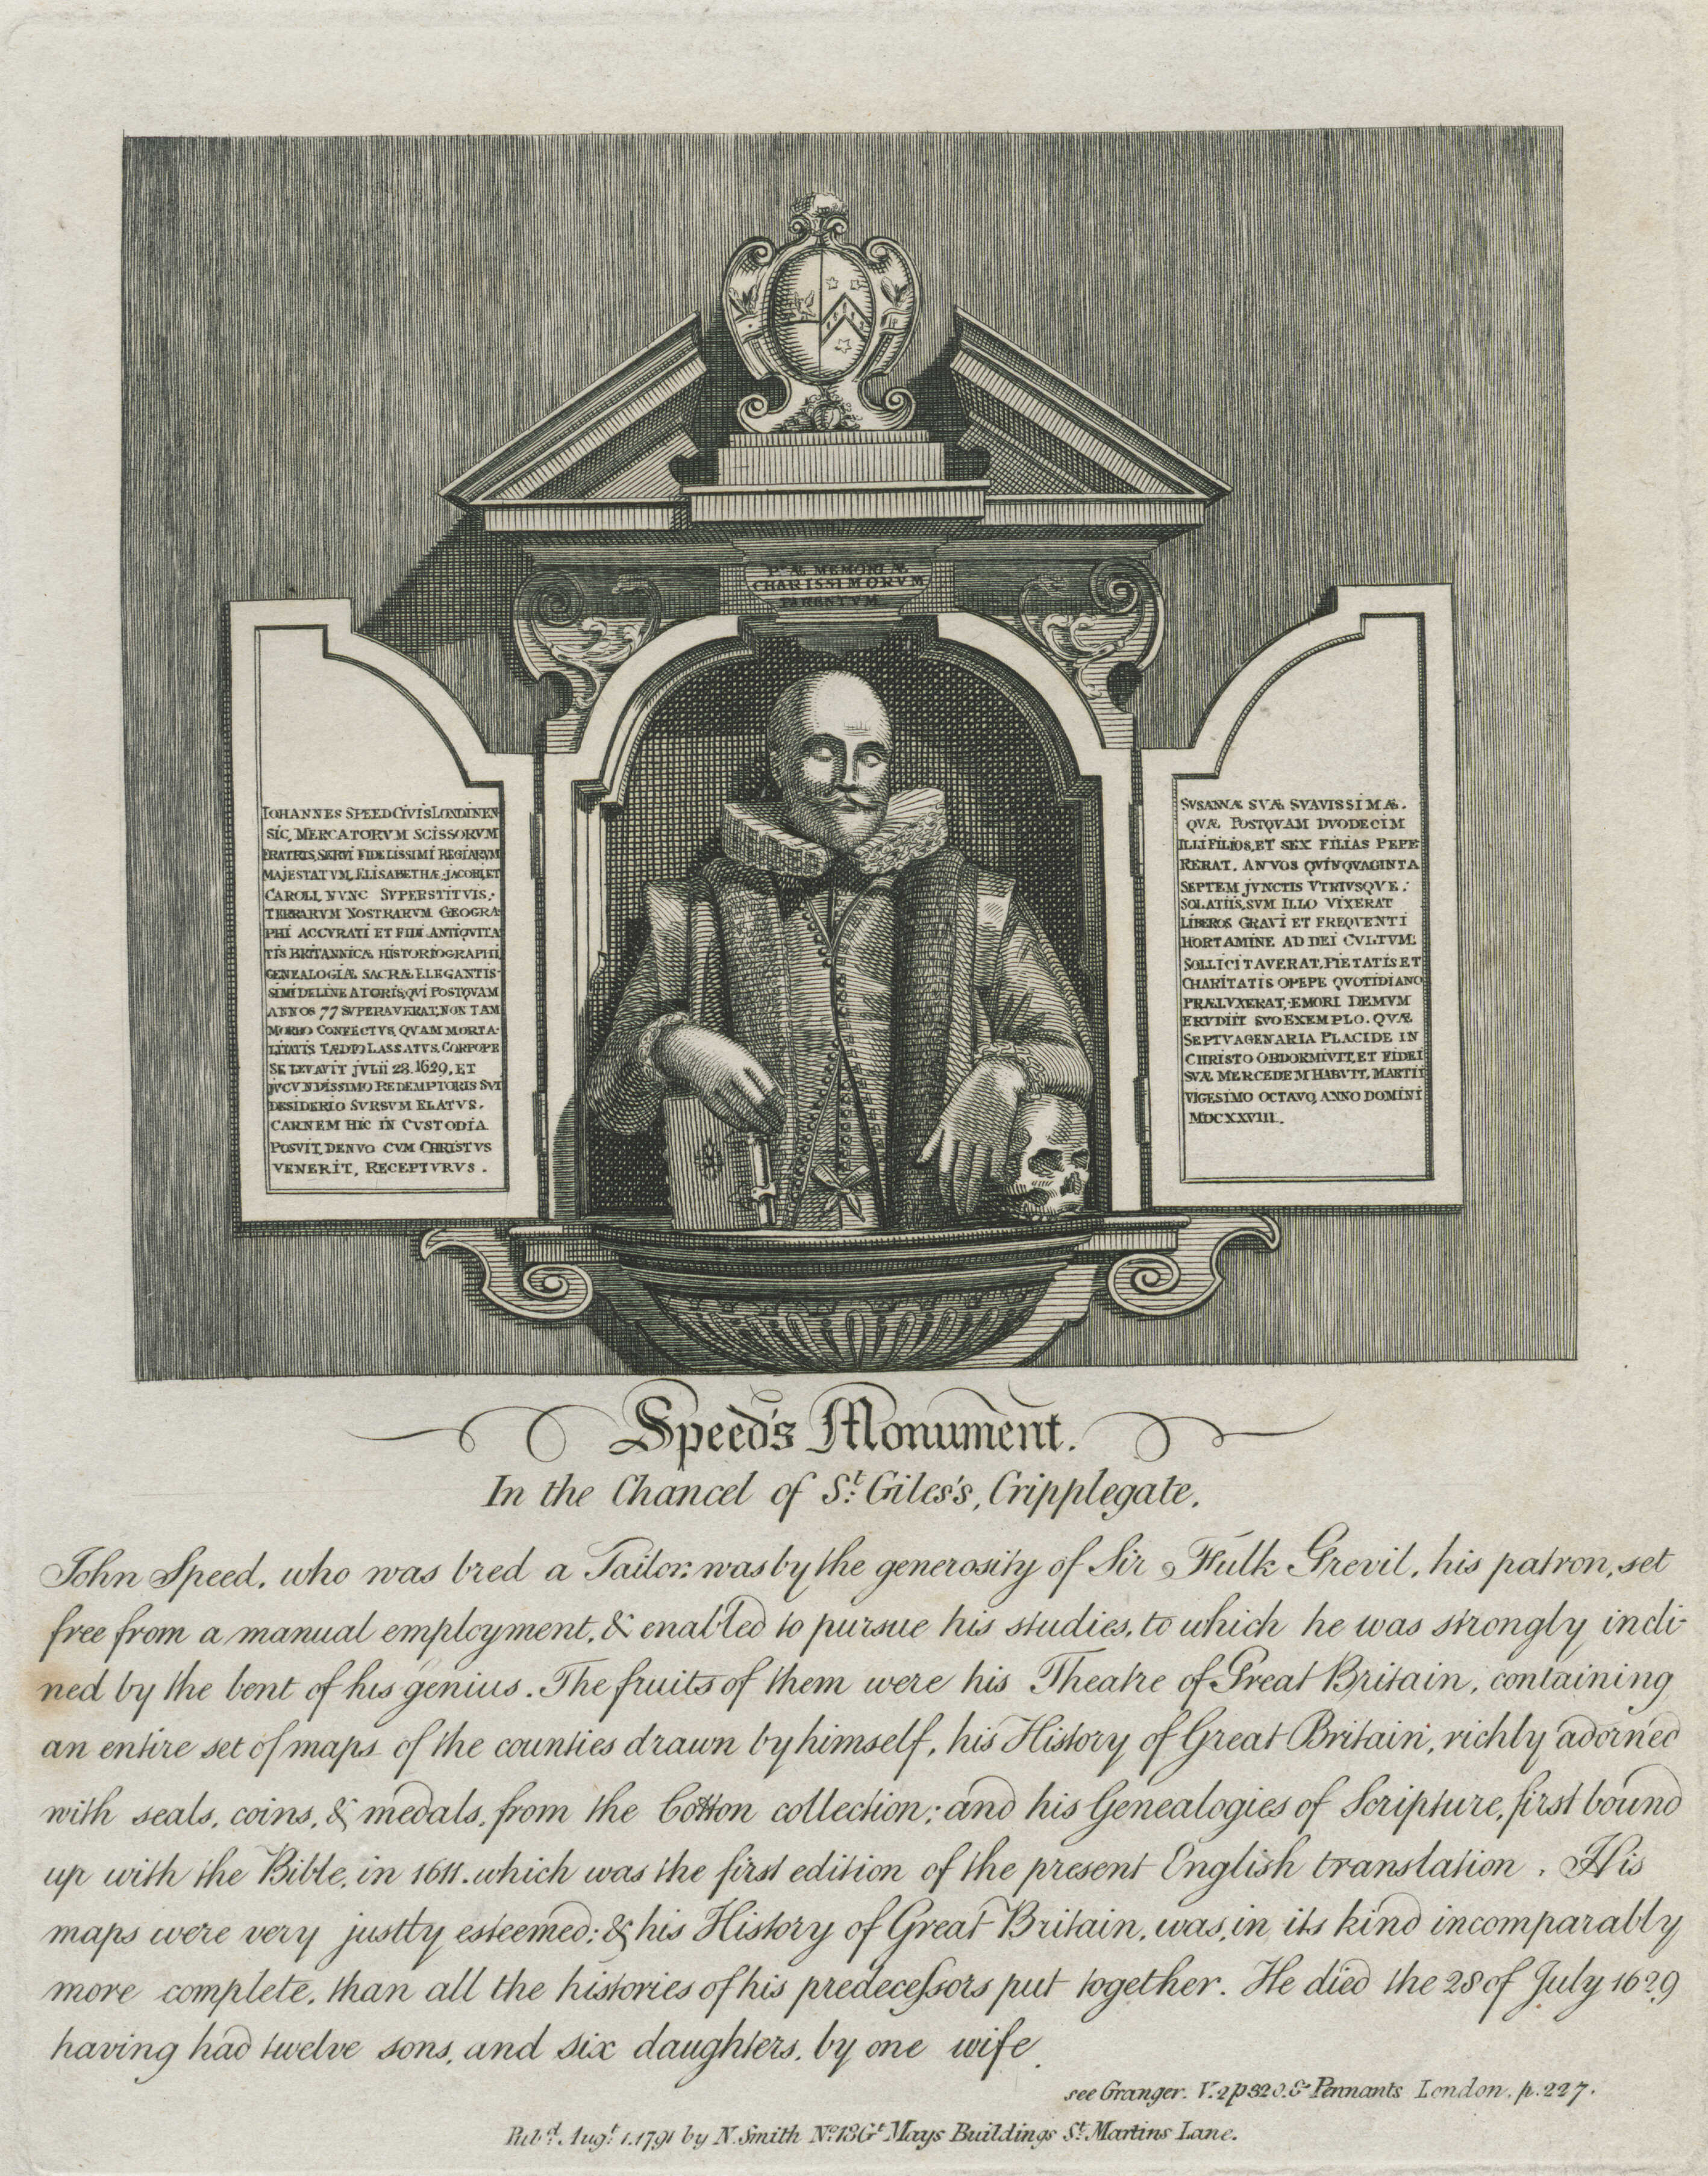 21-speeds-monument-in-the-chancel-of-st-giless-cripplegate